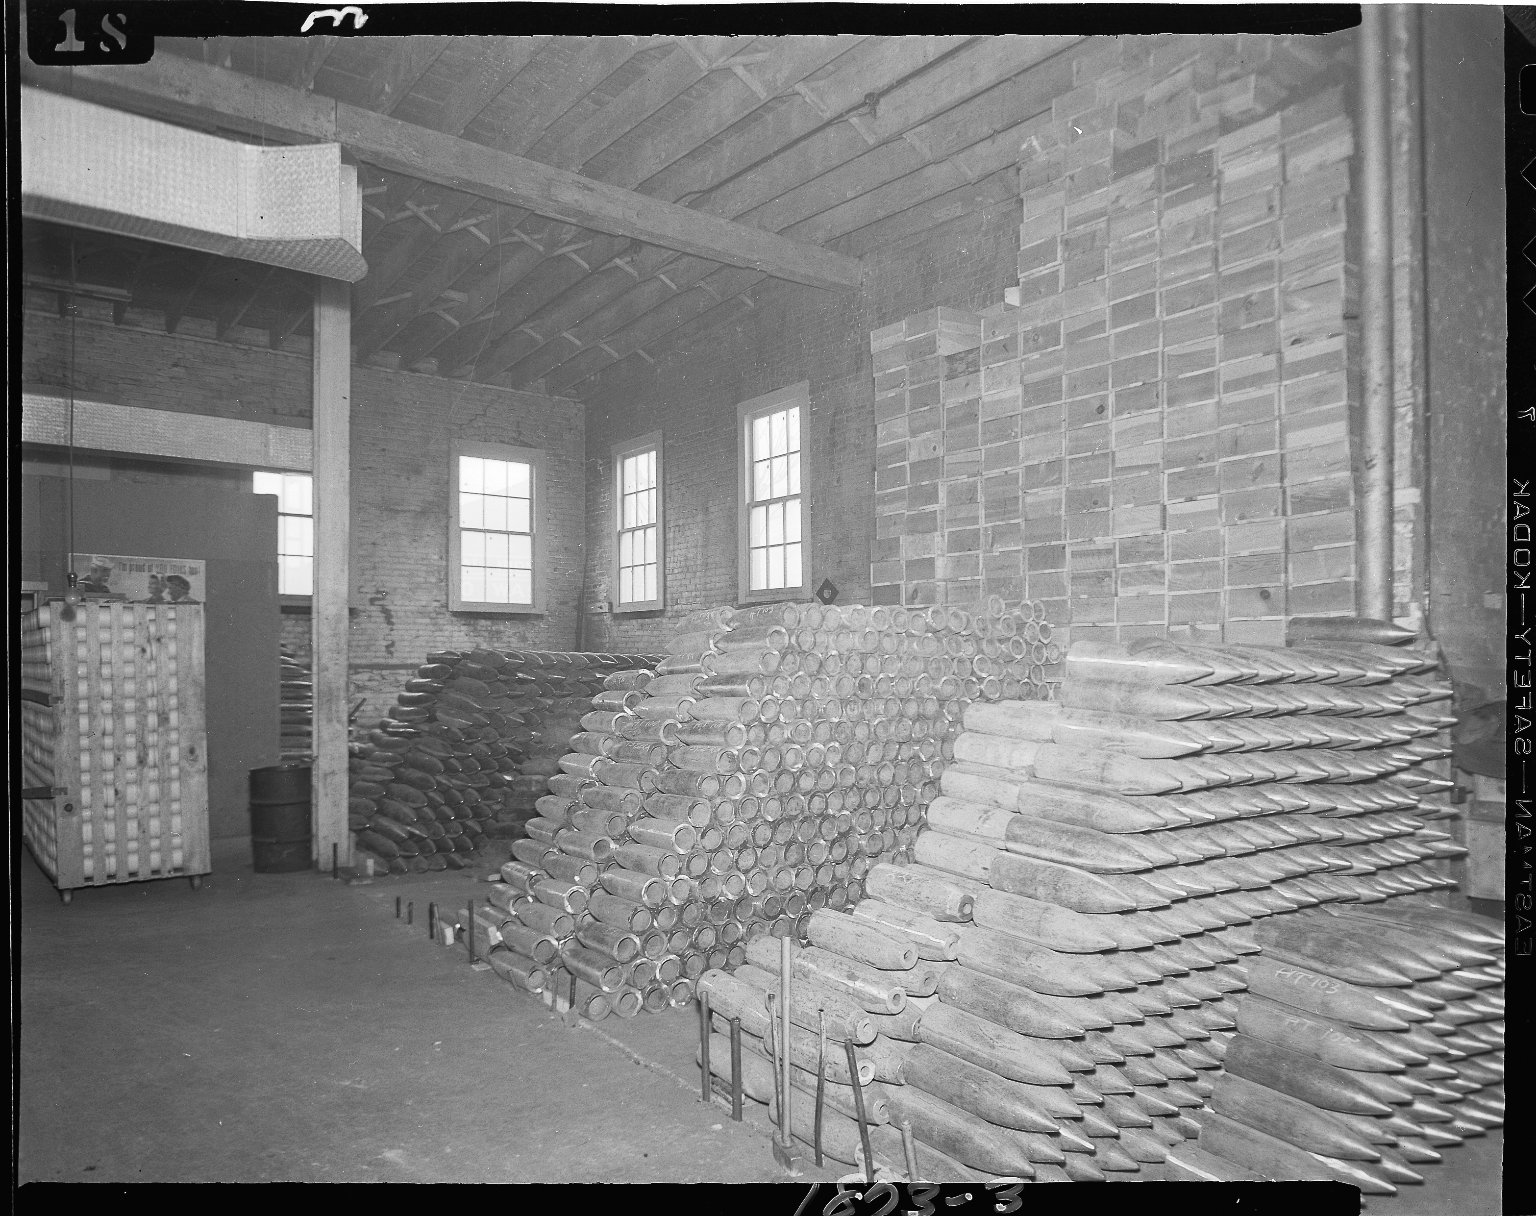 Ammunition shells industrial plant warehouse, interior